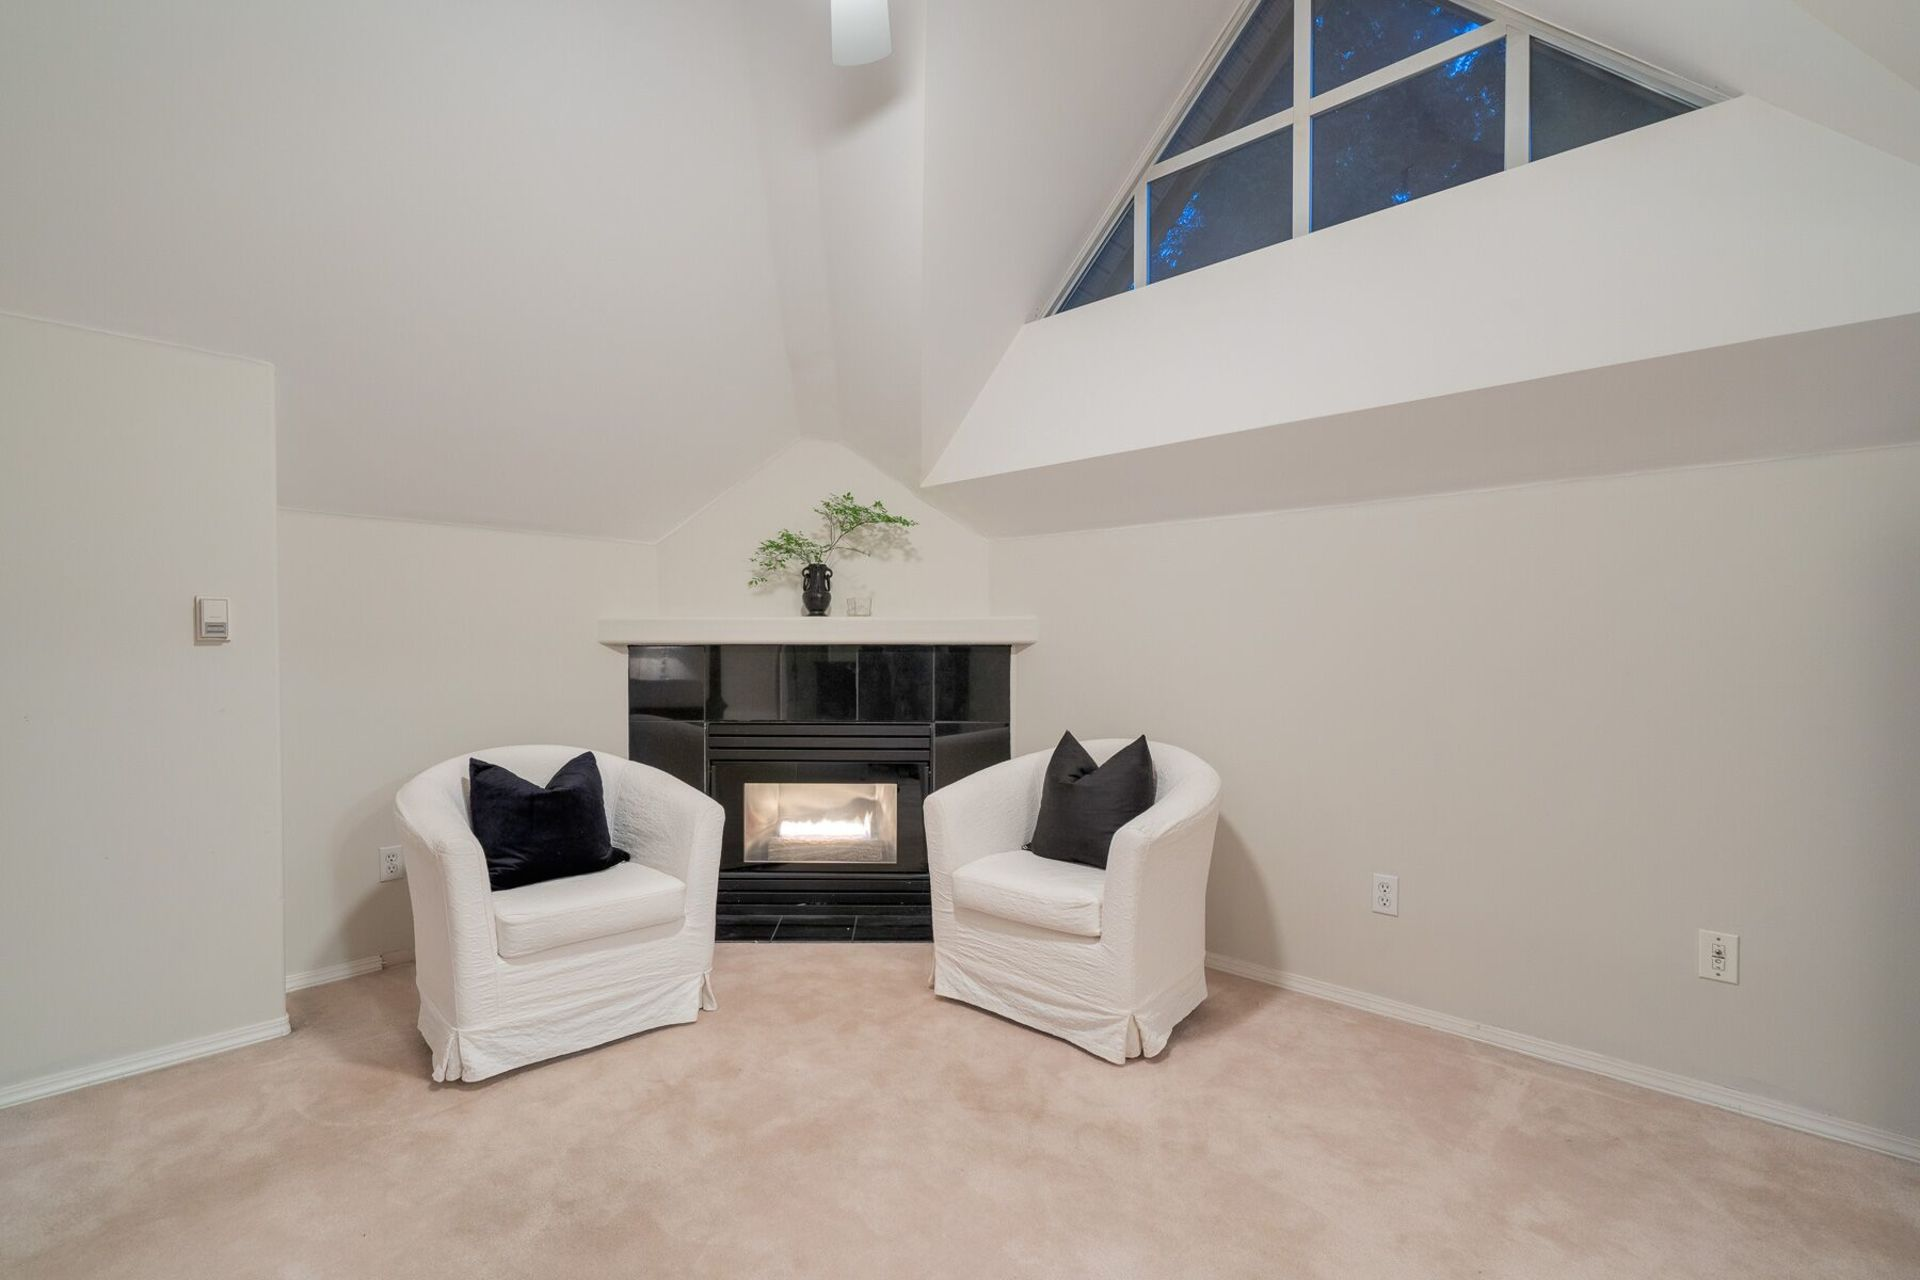 xcctogtw at 6 - 1 Aspenwood Drive, Heritage Woods PM, Port Moody